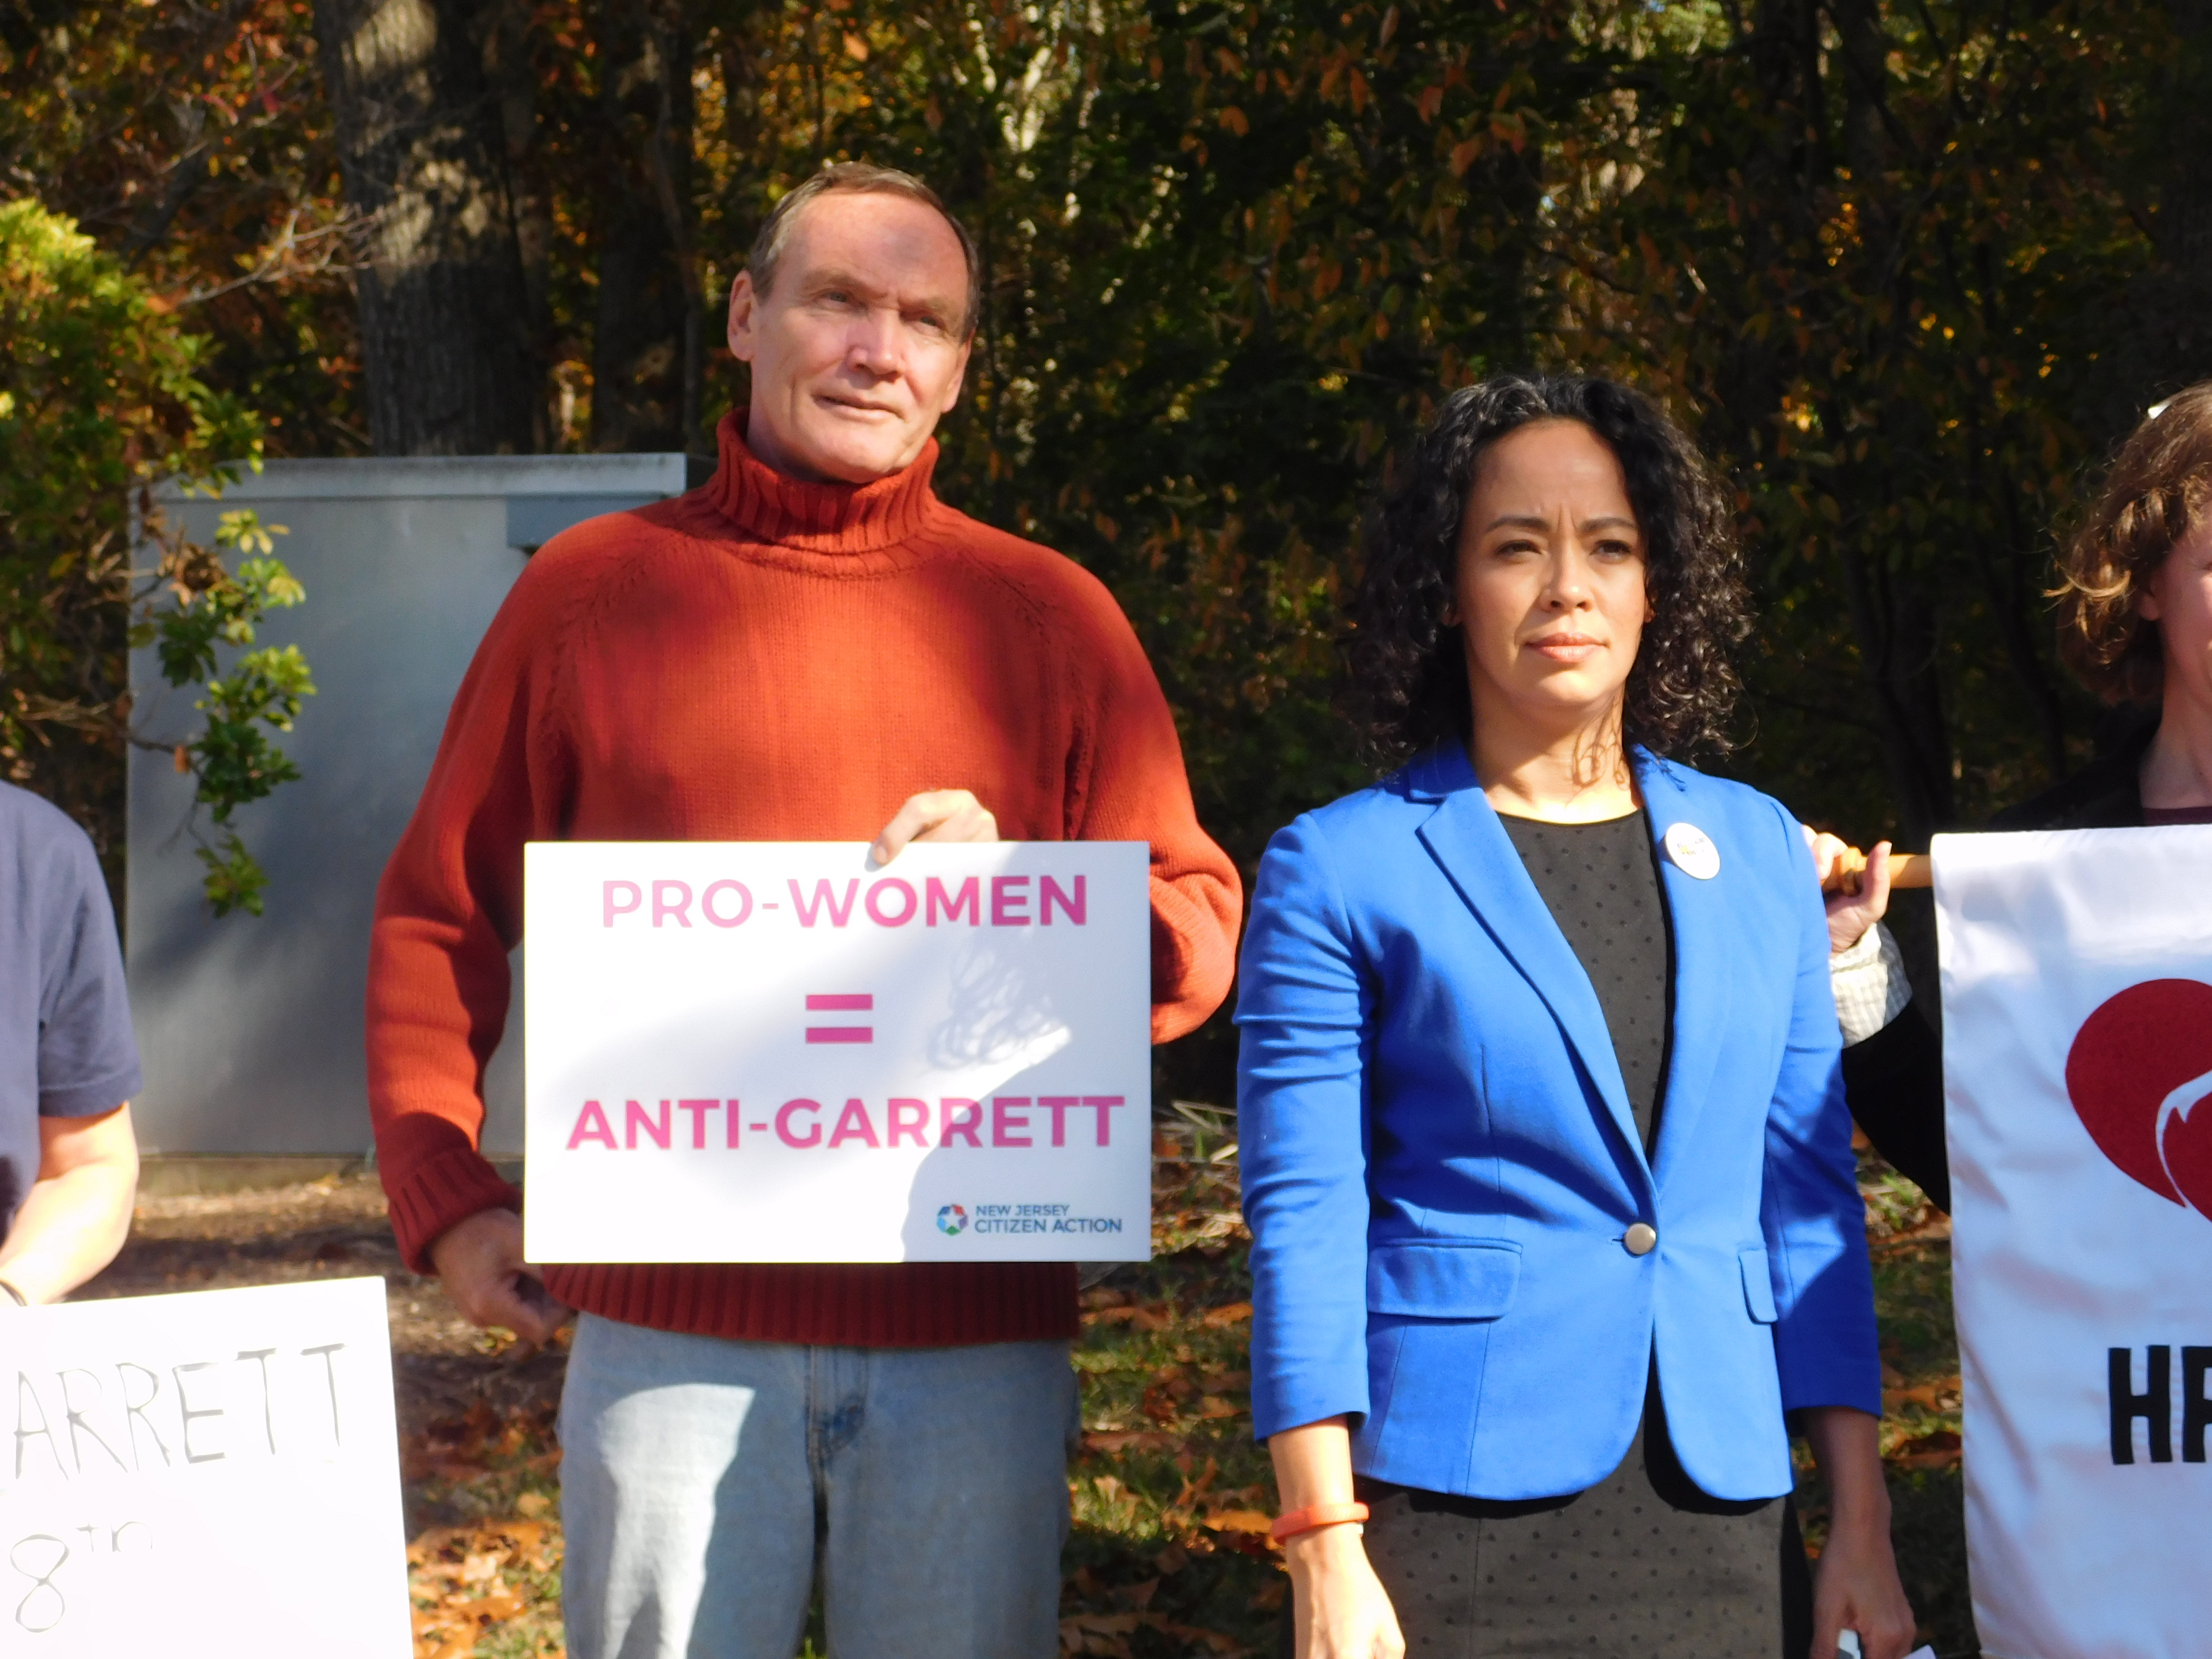 Tim Eustace and Milly Silva at the Paramus rally calling for voters to 'fire' Rep. Scott Garrett.